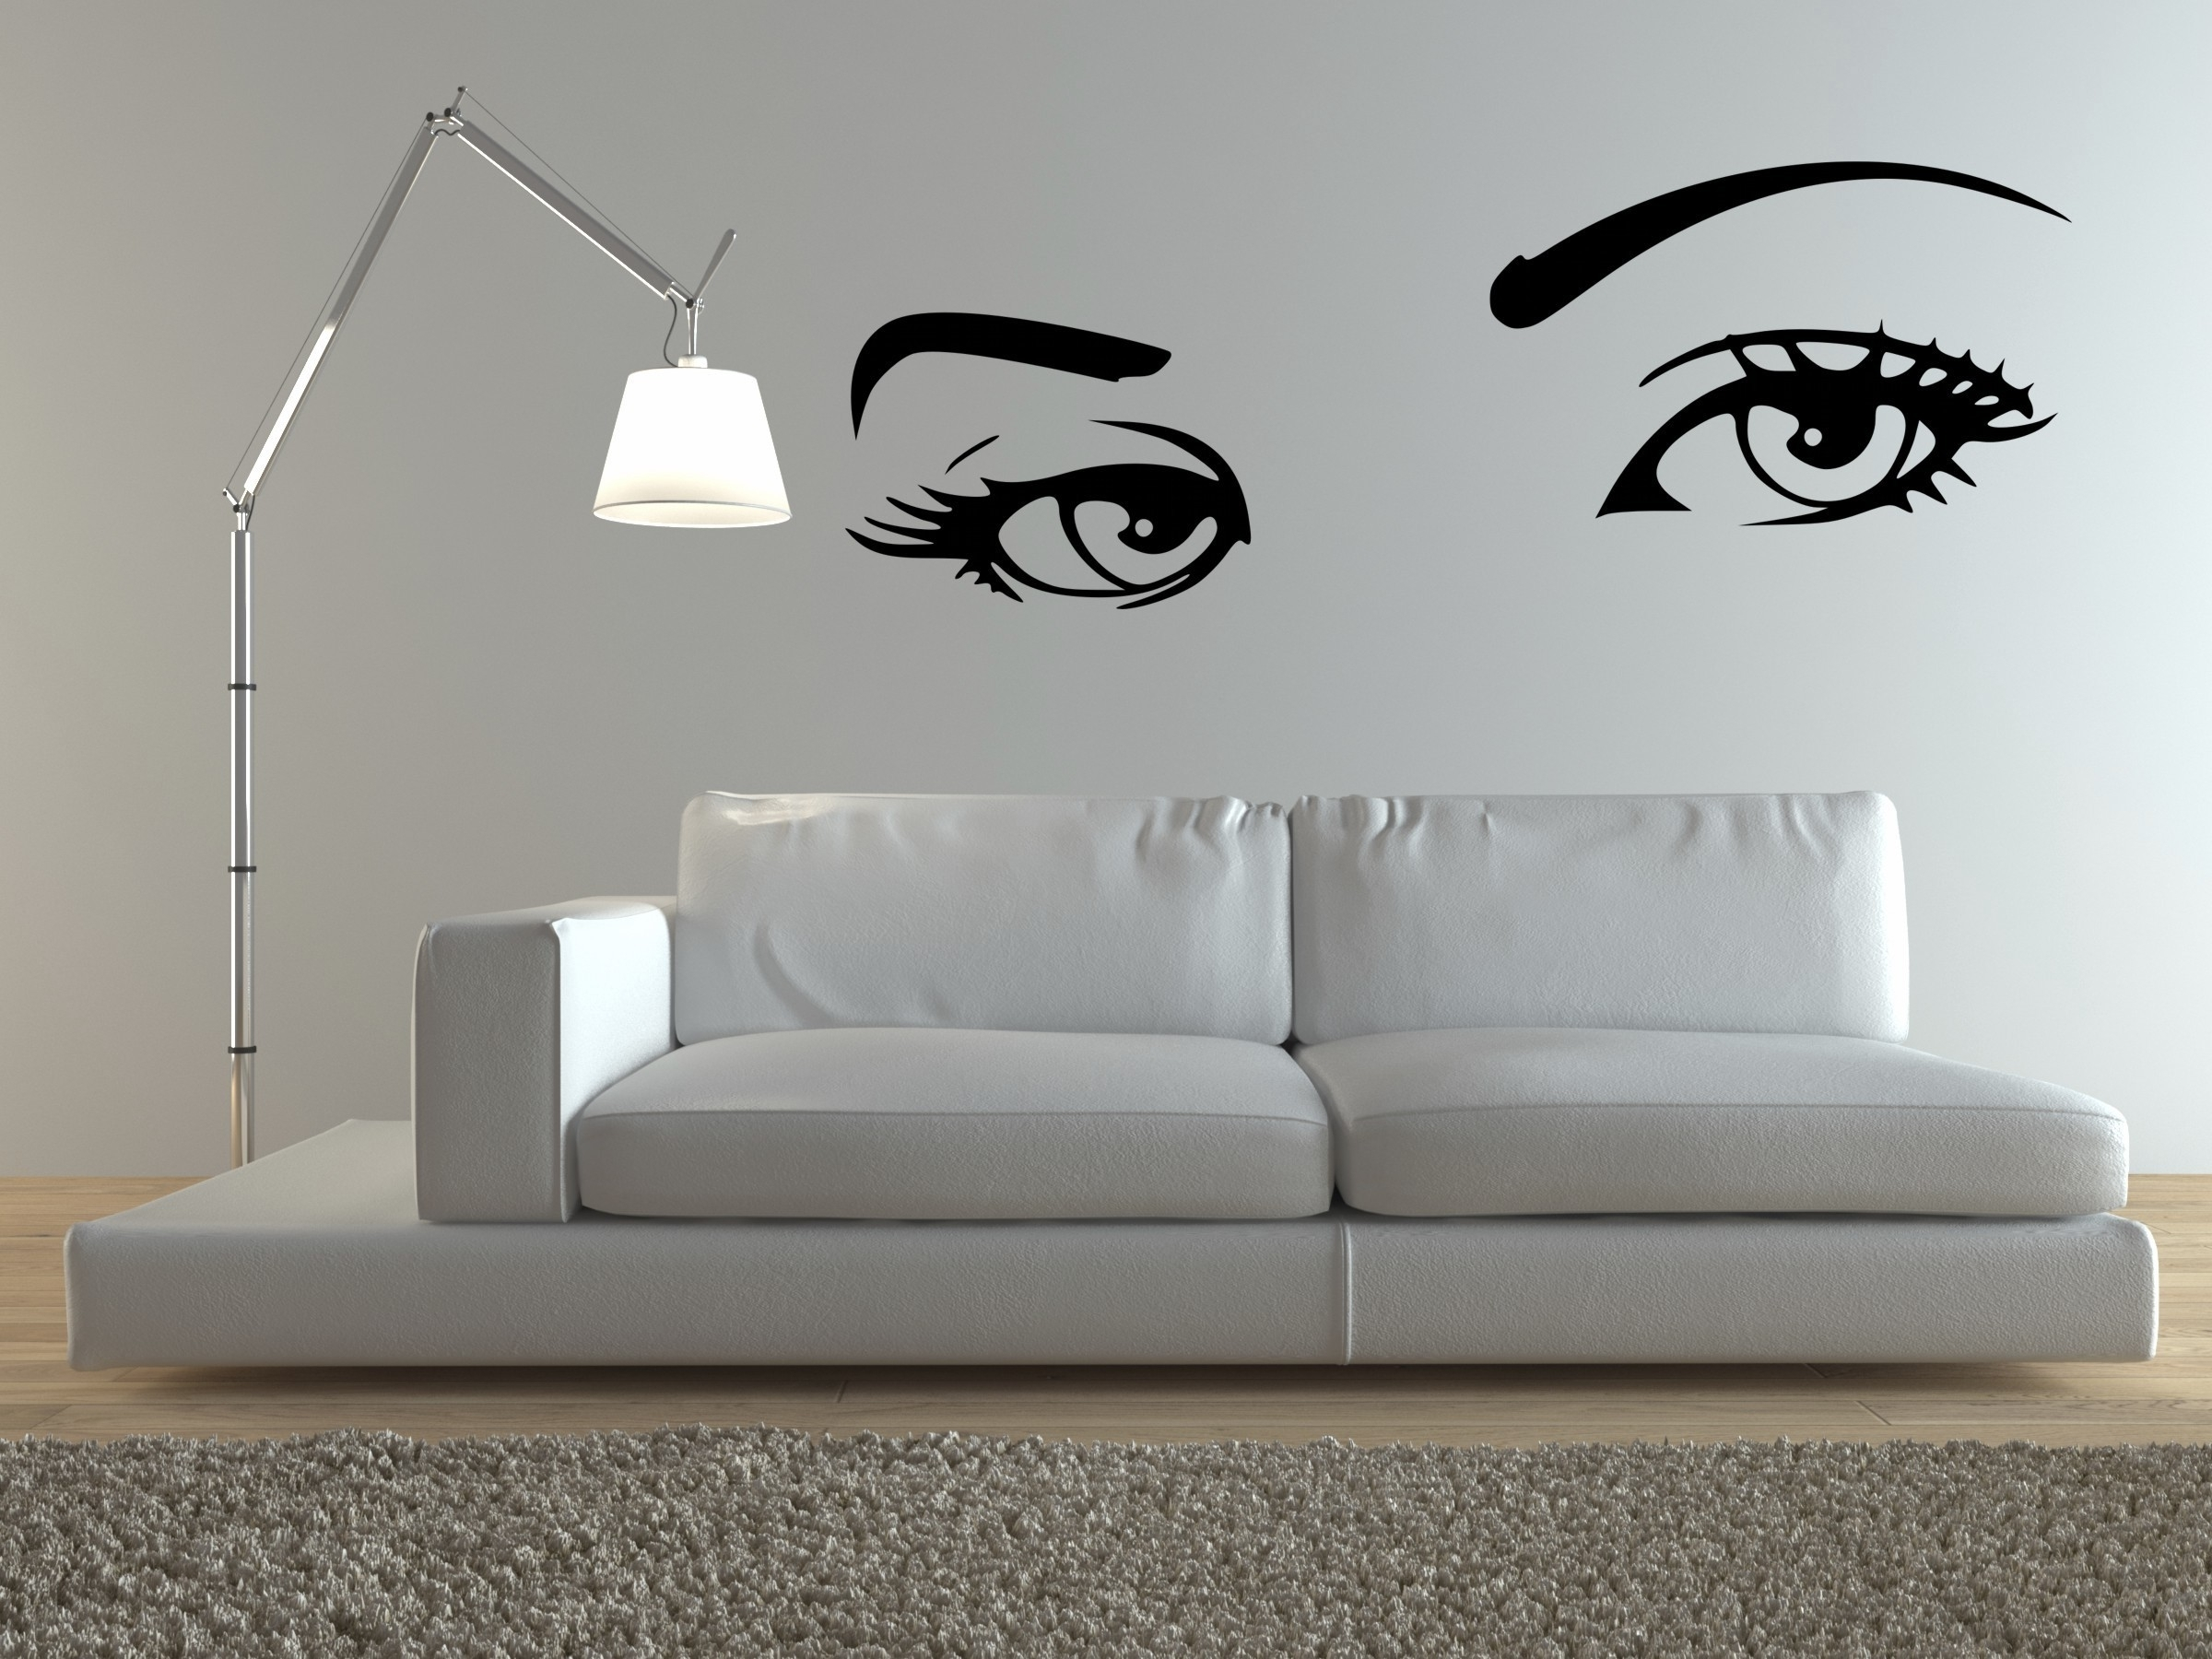 Custom Wall Stickers | Wall Of Photos | Pinterest | Wall Sticker Inside Recent Custom Wall Accents (View 9 of 15)